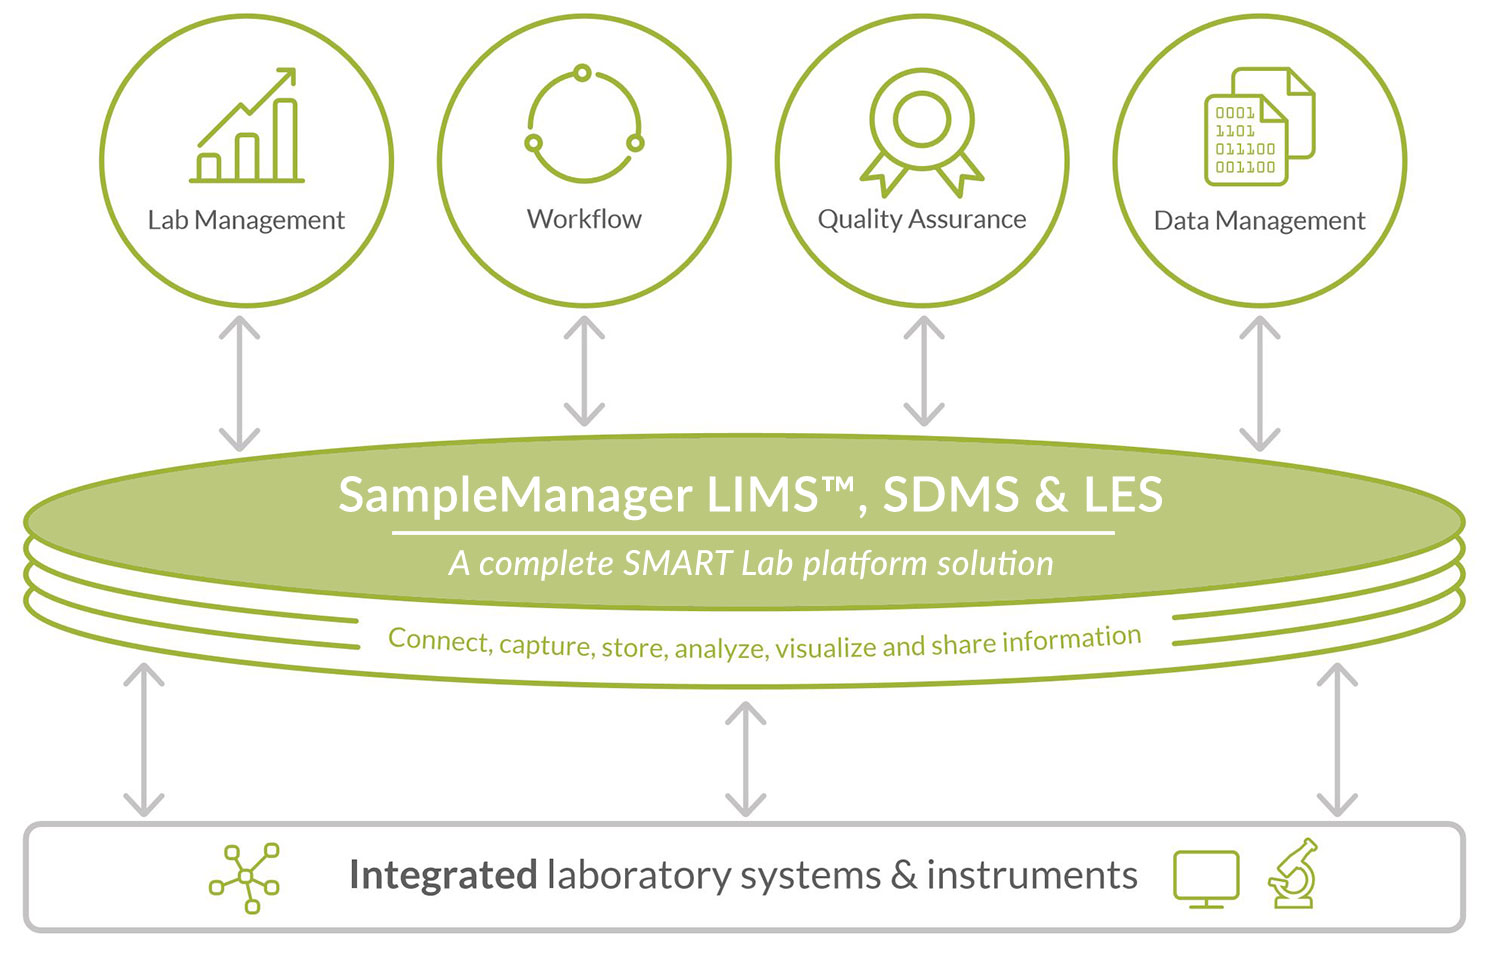 A LIMS solution is essential if you want to turn your operations into a SMART Lab